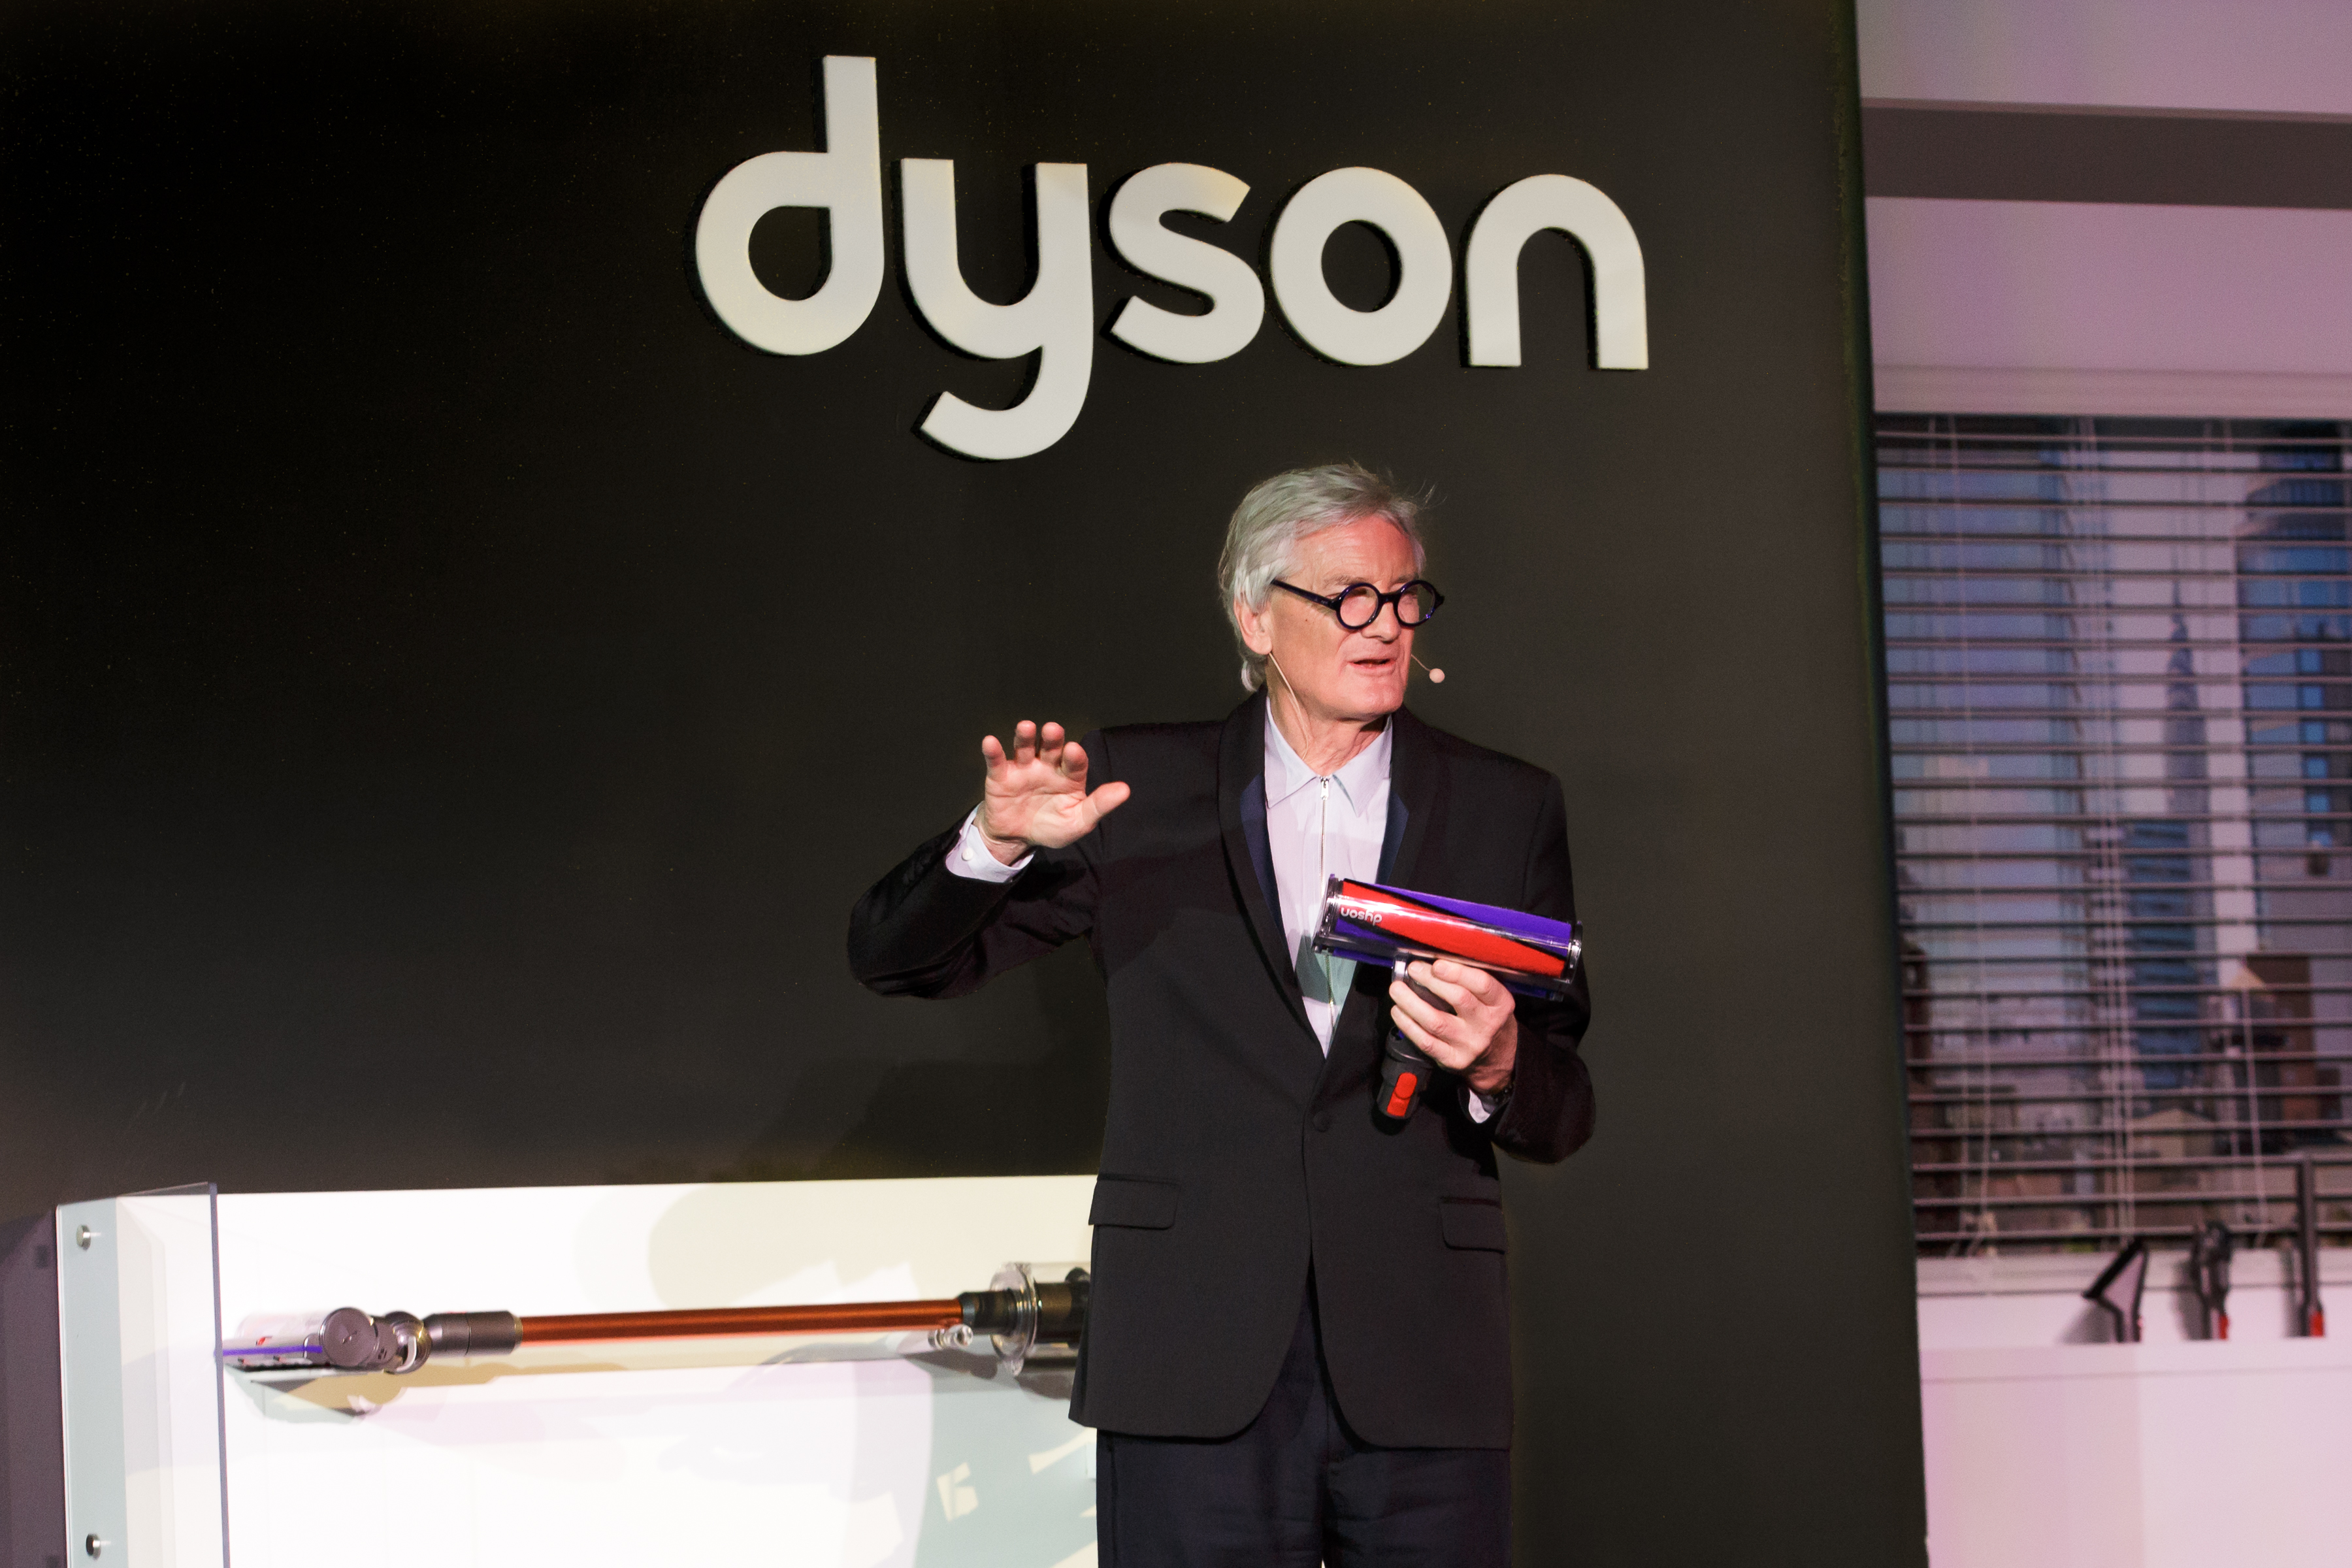 Afternoon Tea With Sir James Dyson